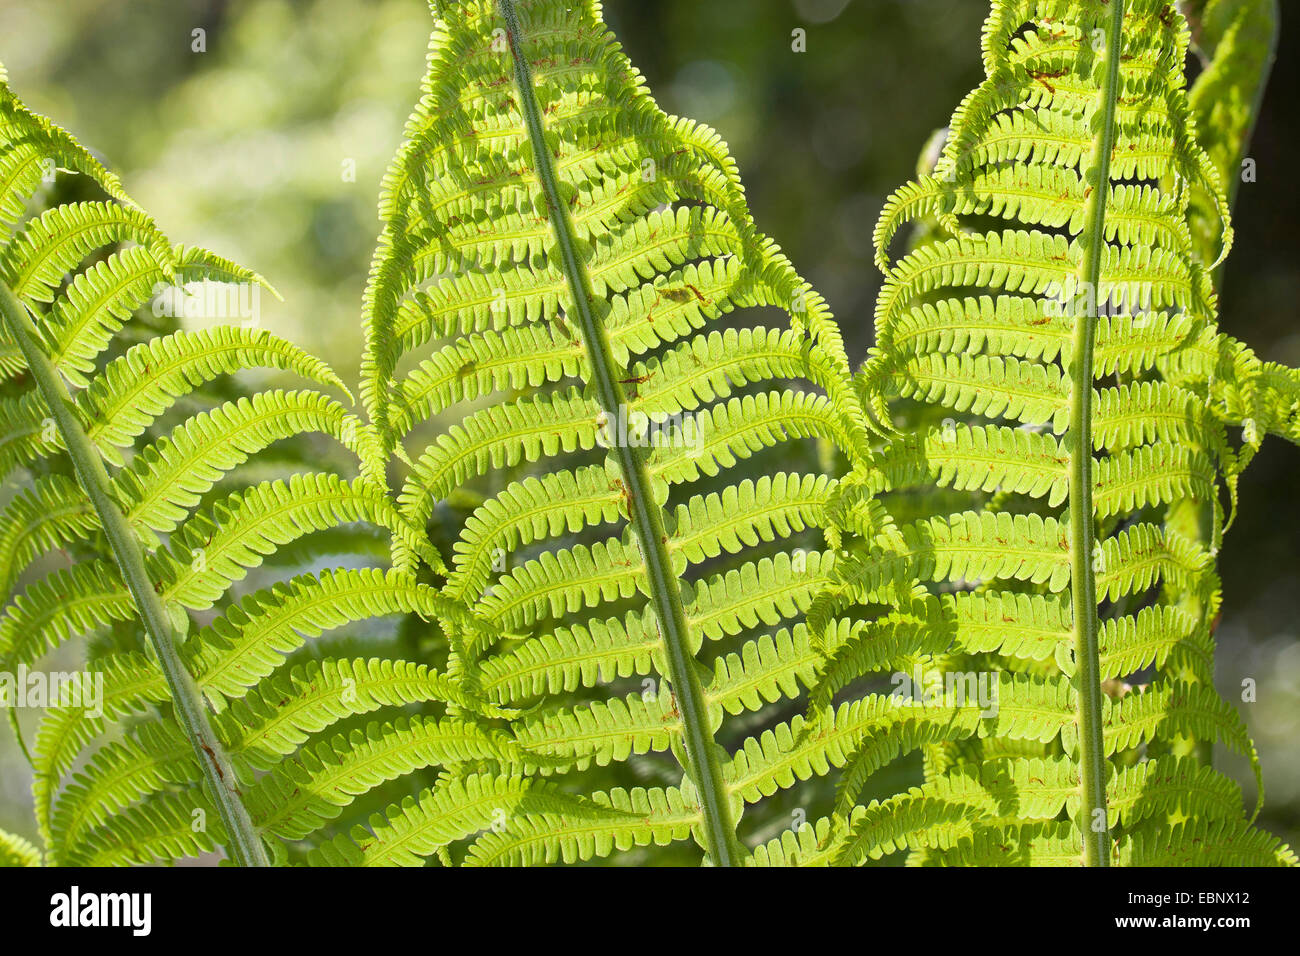 European Ostrich Fern, Ostrich Fern (Matteuccia struthiopteris), leaves in backlight, Germany - Stock Image